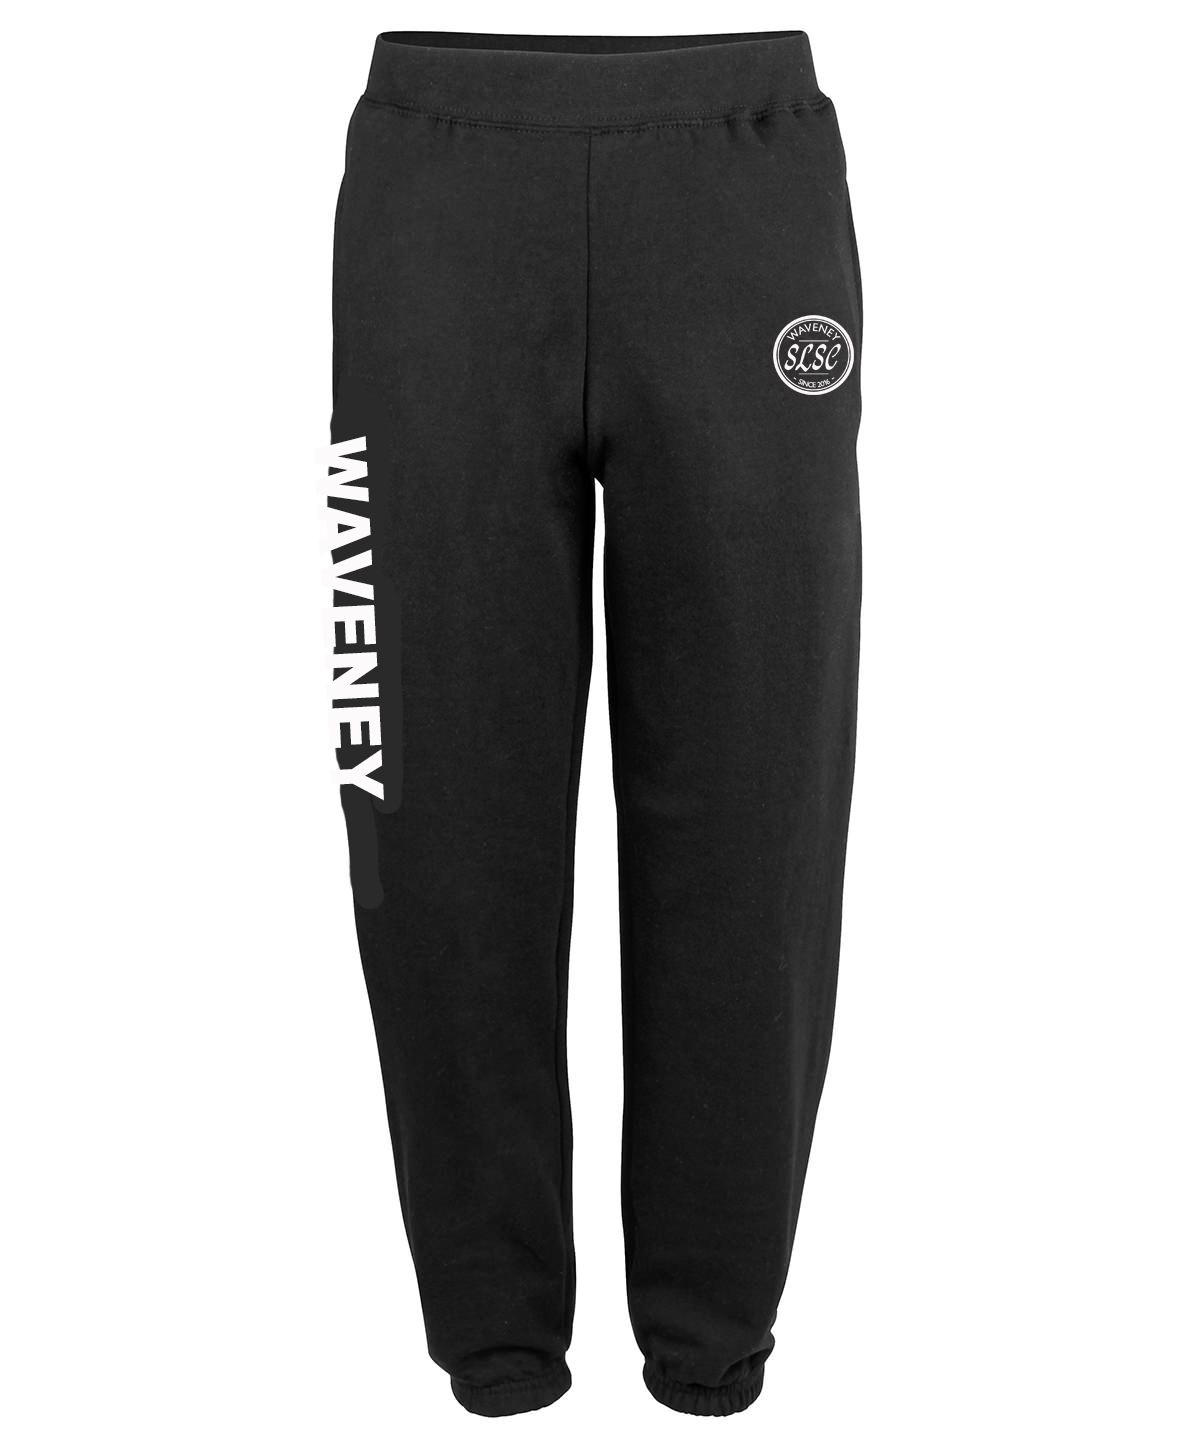 WSLSC Youth Jog Pants